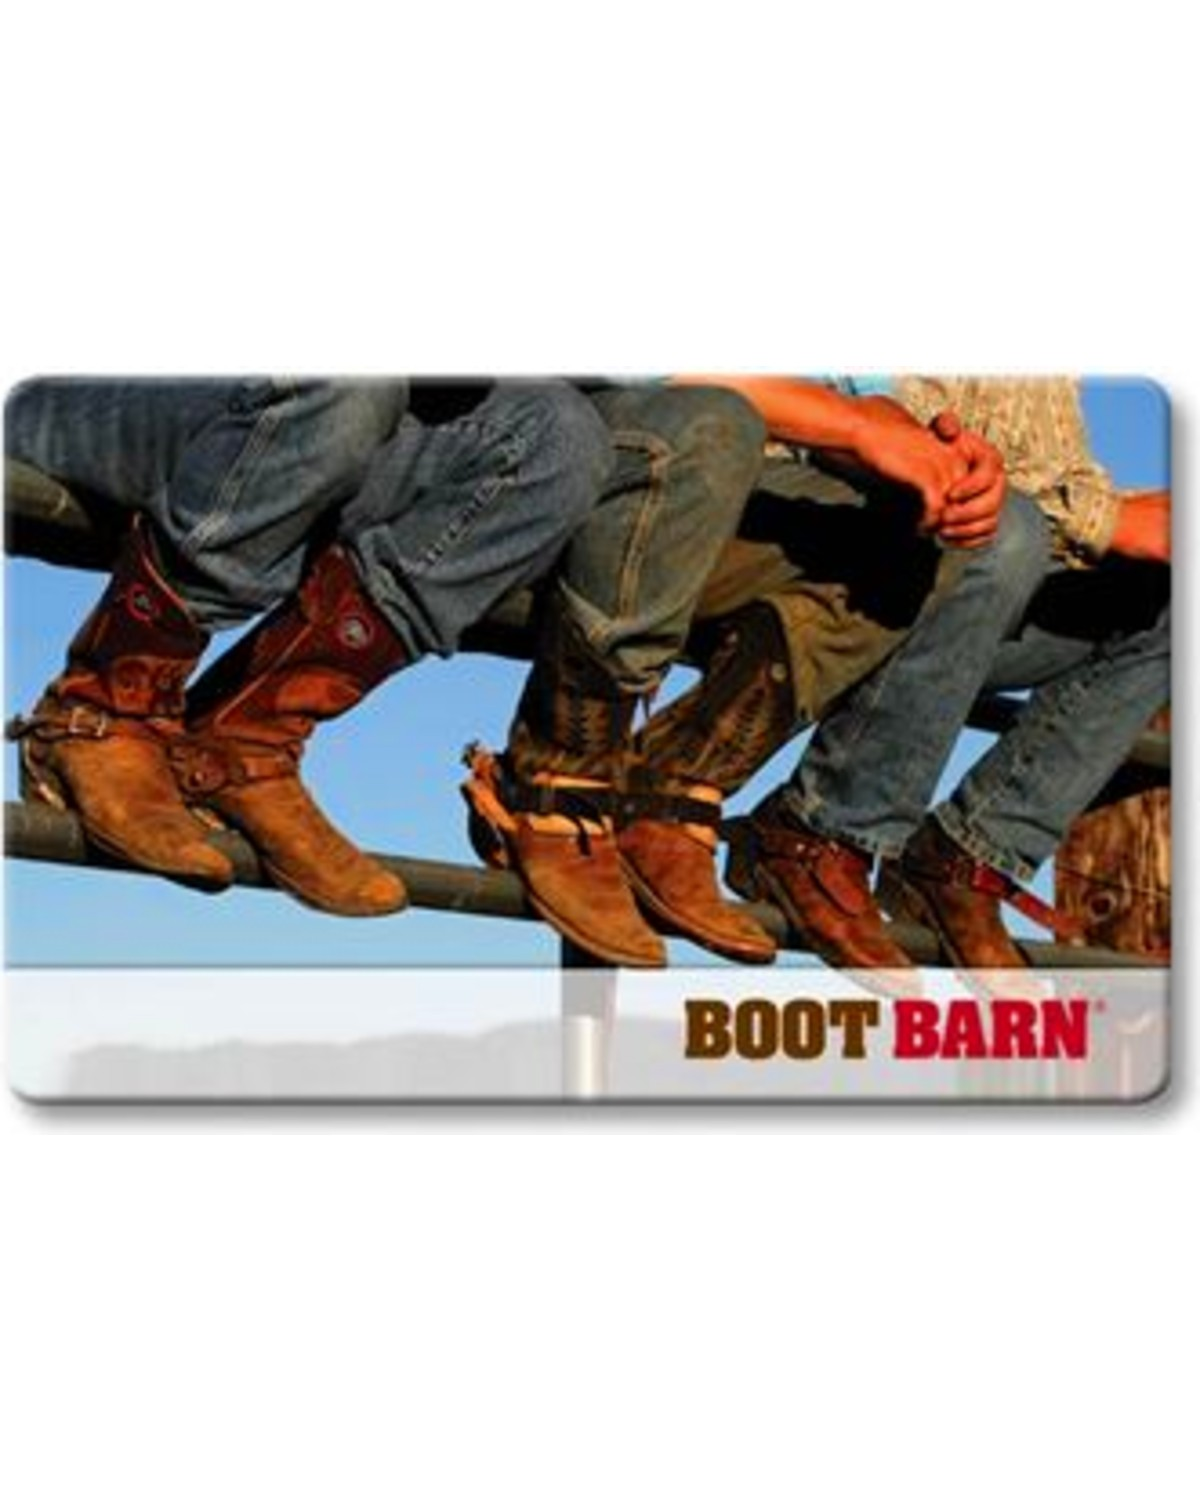 picture relating to Boot Barn Coupons Printable named Boot Barn Reward Card Boot Barn